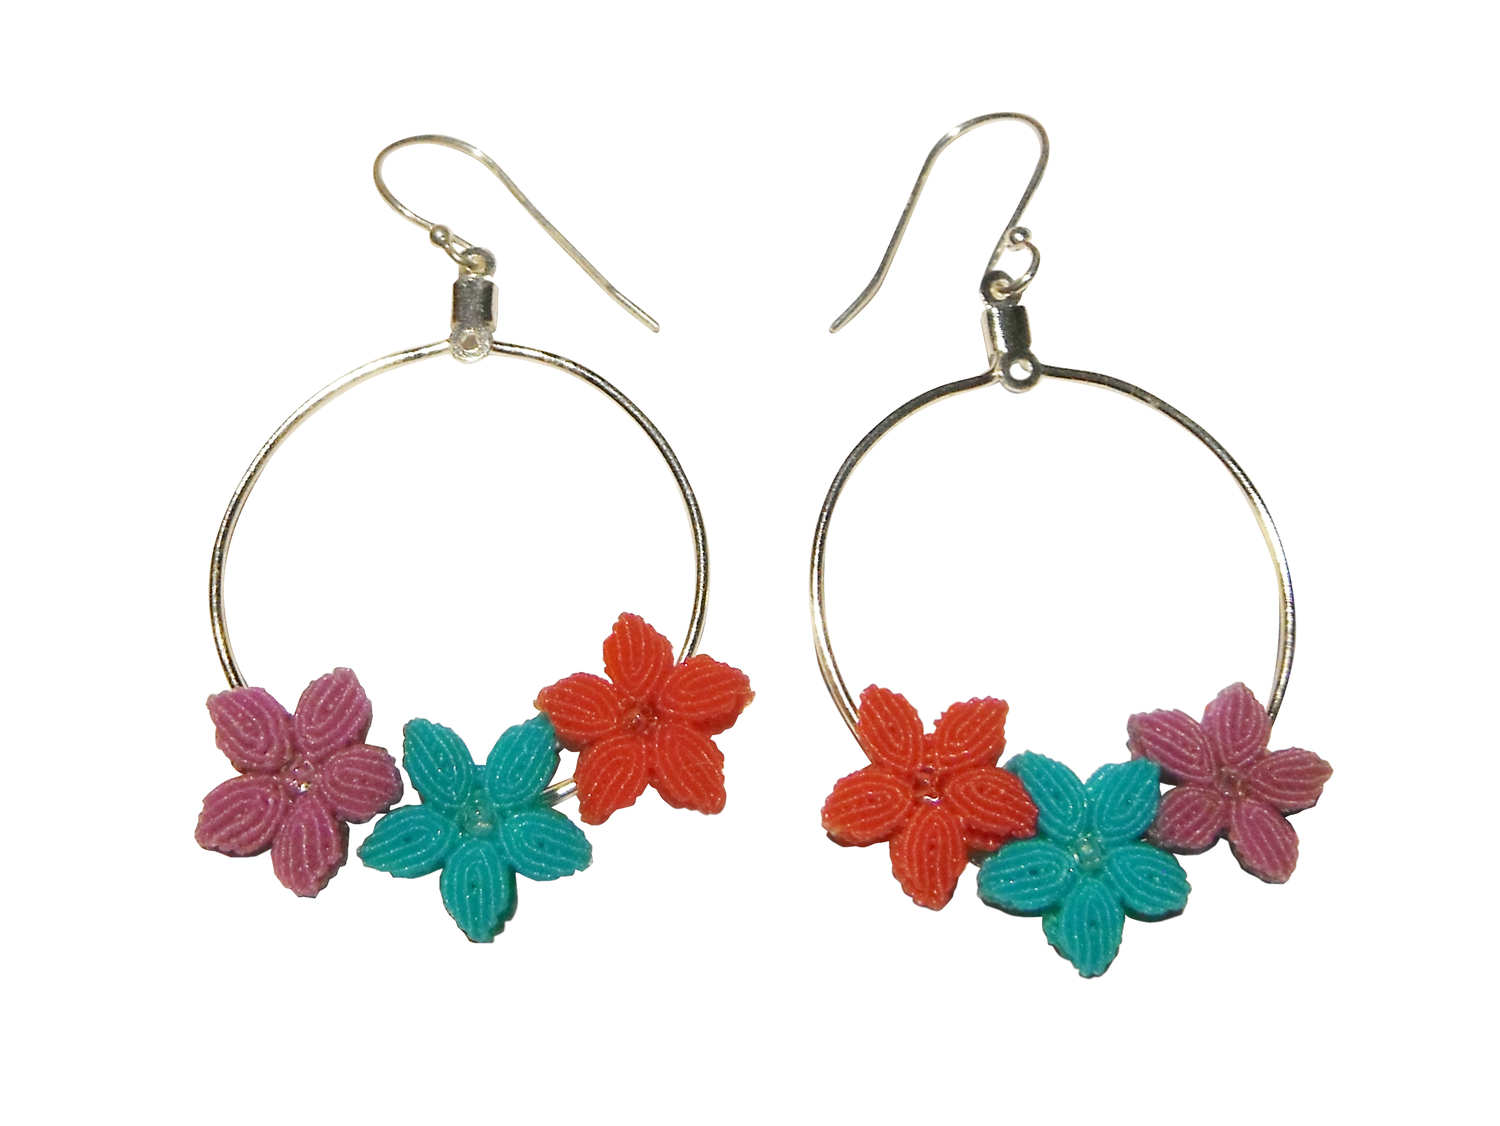 Hand-knotted Flower Earrings